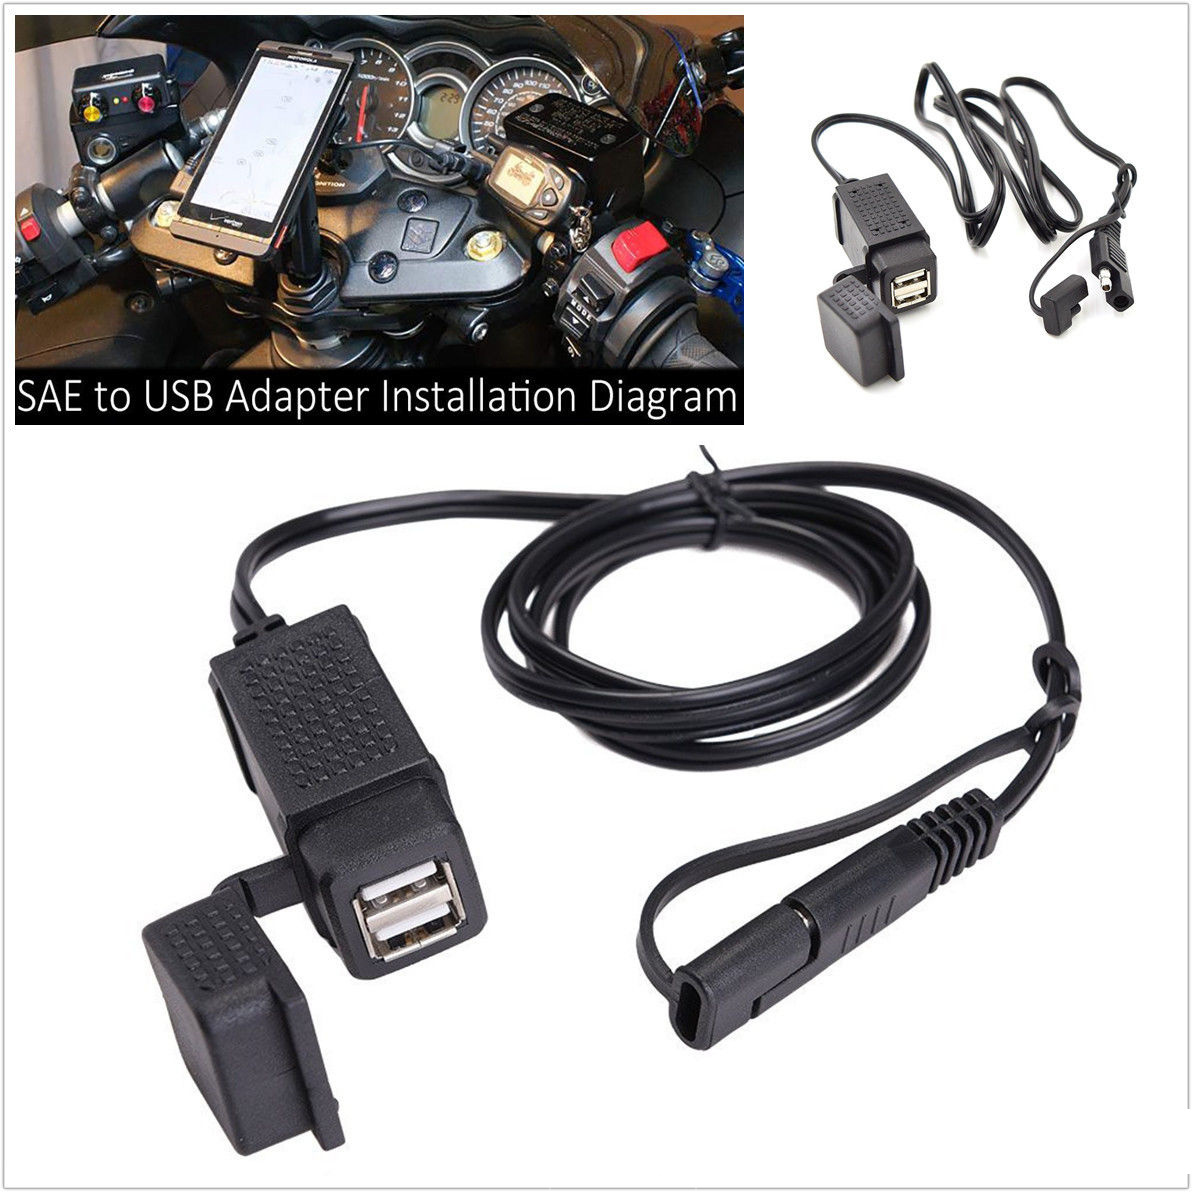 360 °Rotation Motorcycle 2.1A Dual USB Charger Ports SAE to USB Cable Adaptor